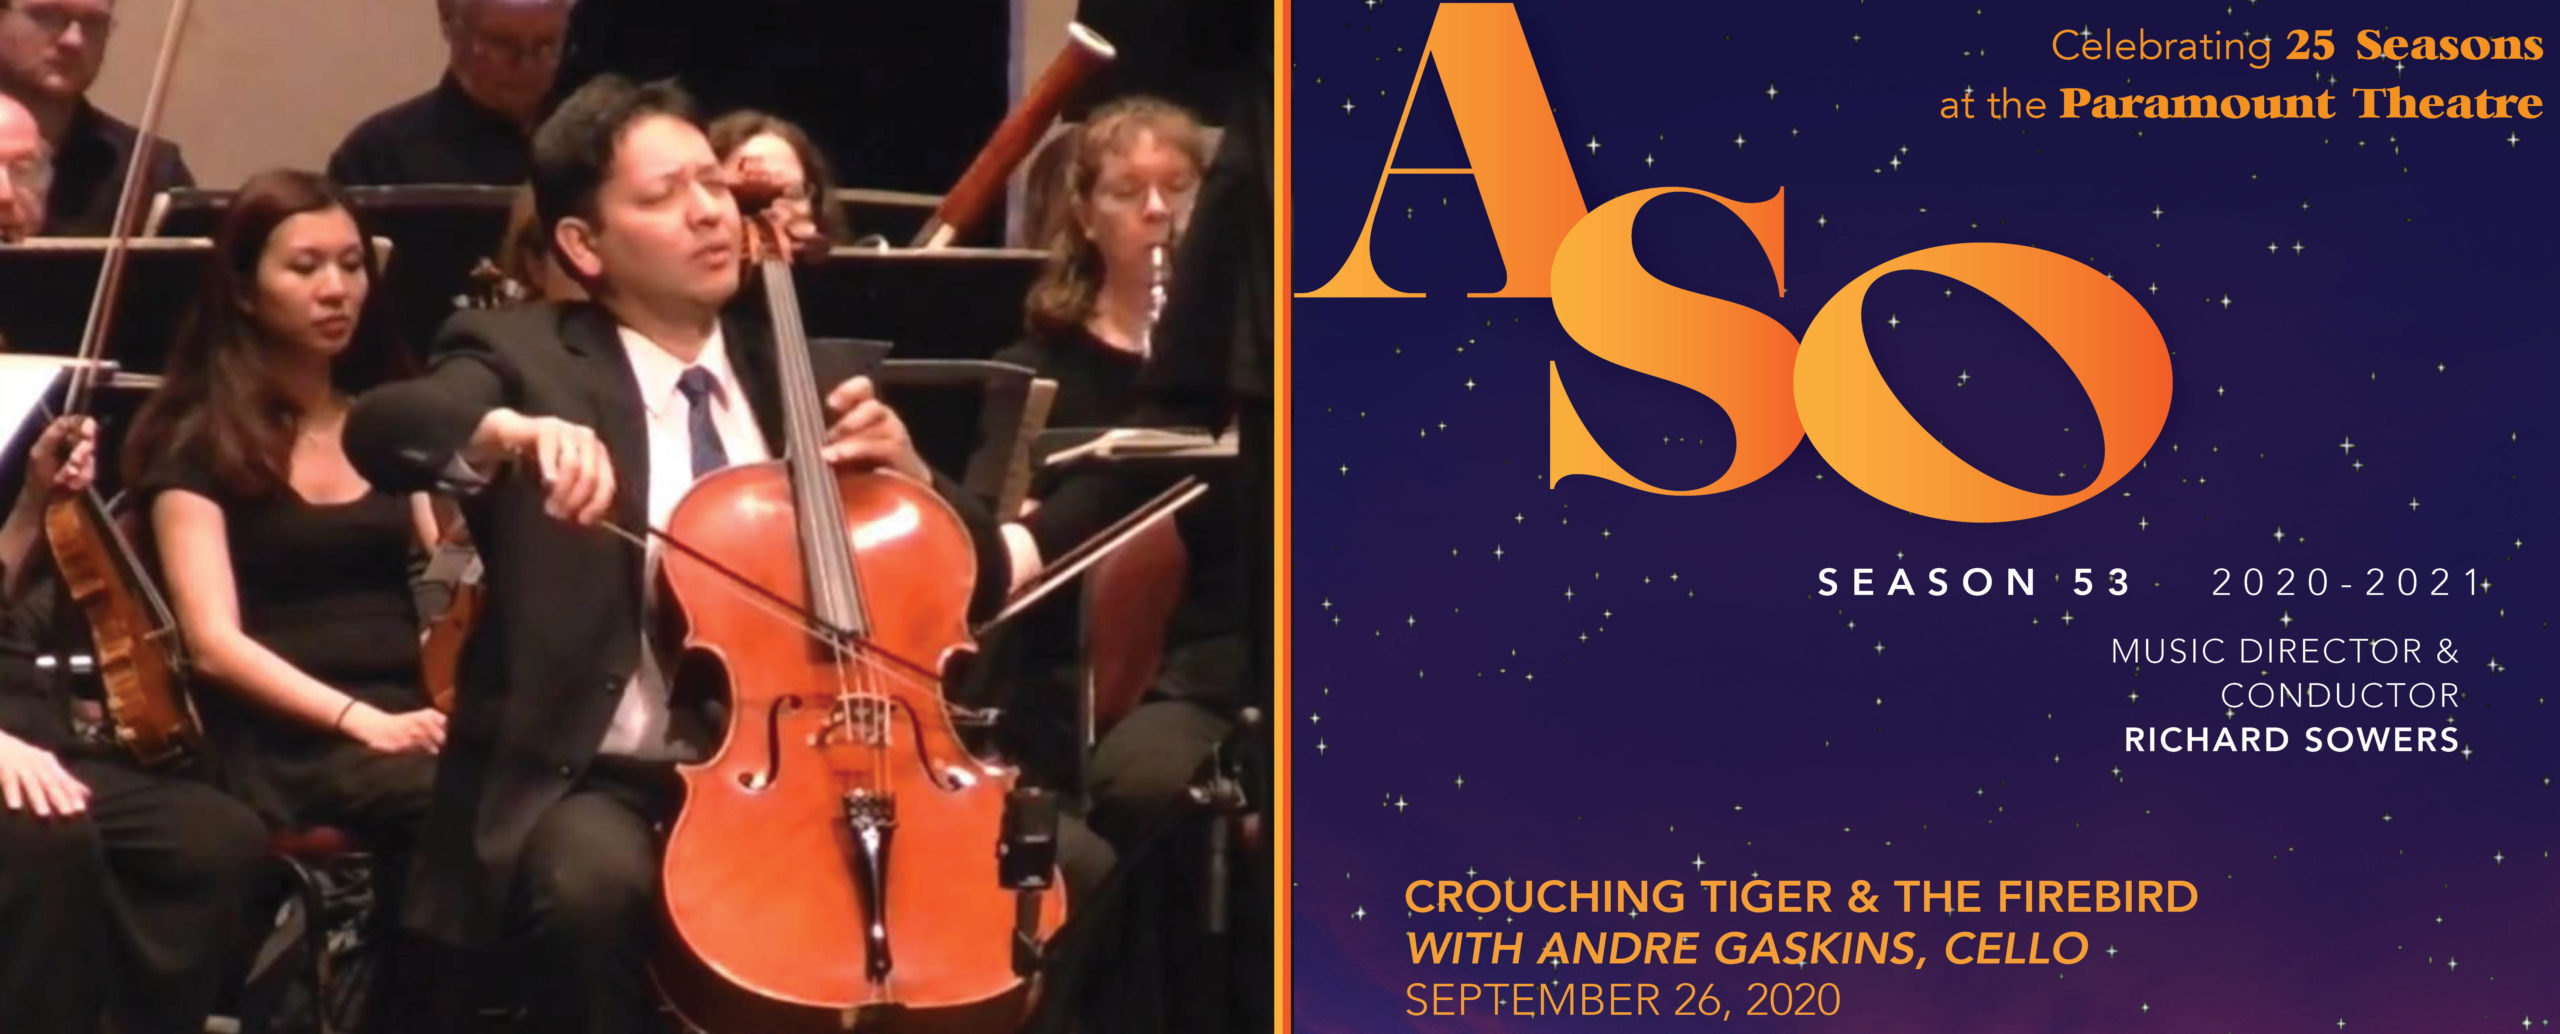 crouching tiger, ASO, symphony, cello, andre gaskins